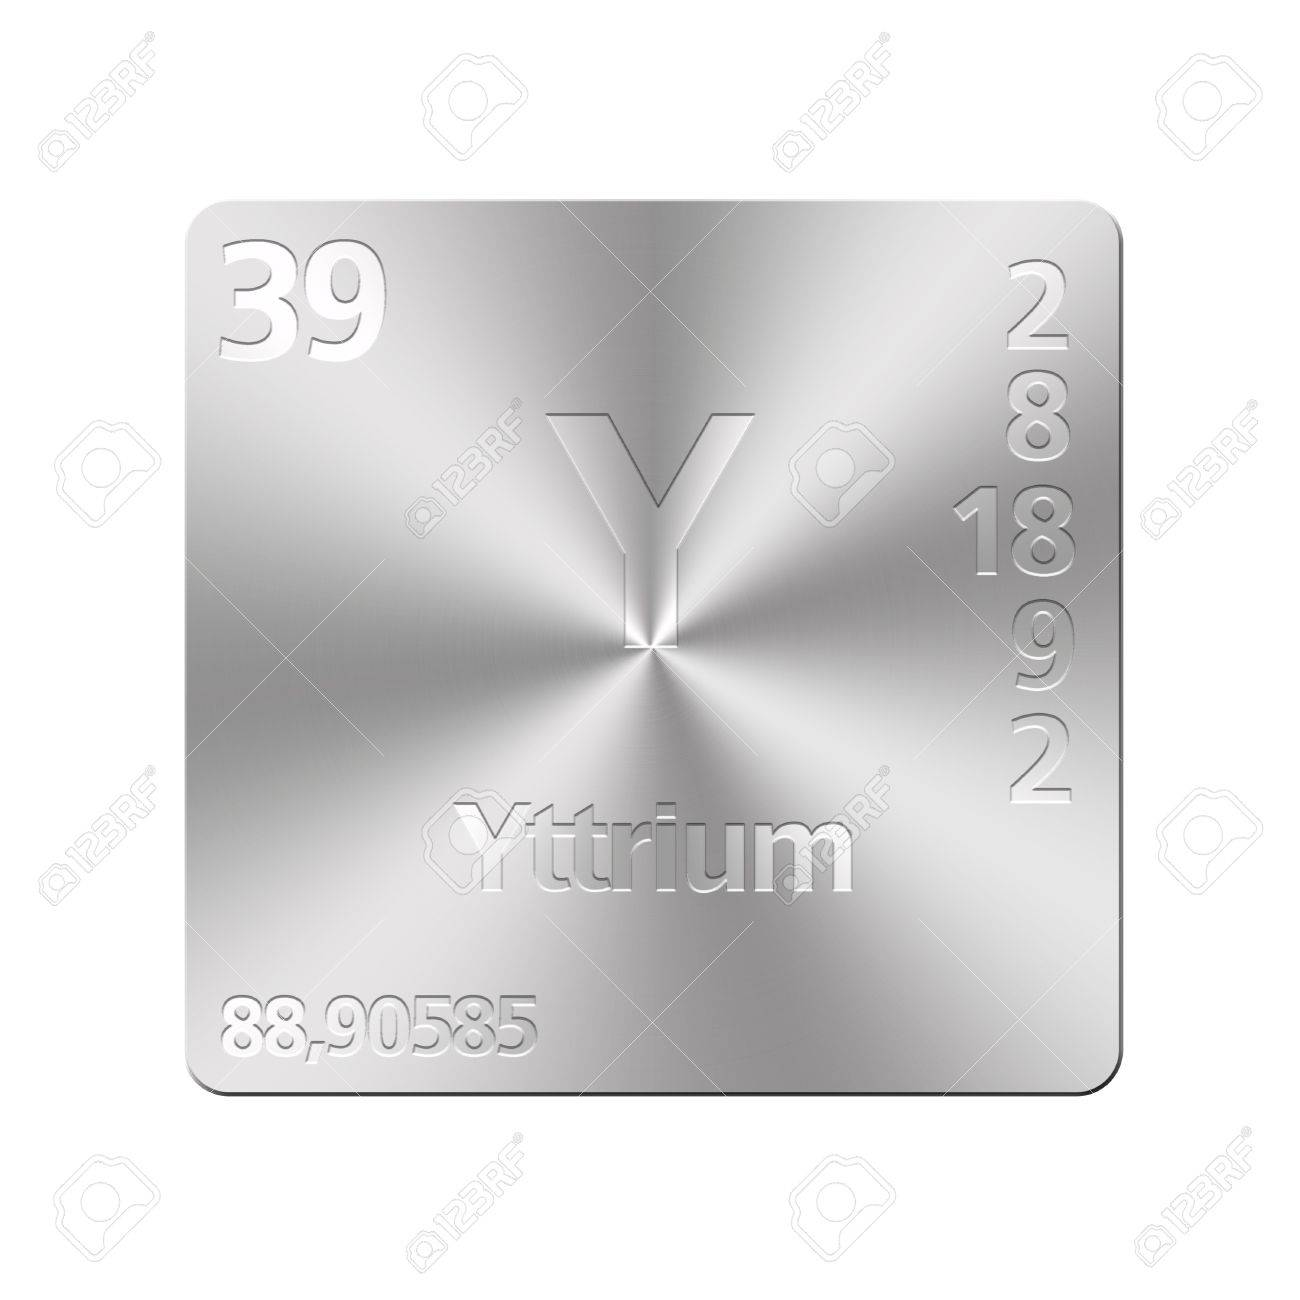 Isolated metal button with periodic table yttrium stock photo isolated metal button with periodic table yttrium stock photo 16057786 urtaz Choice Image